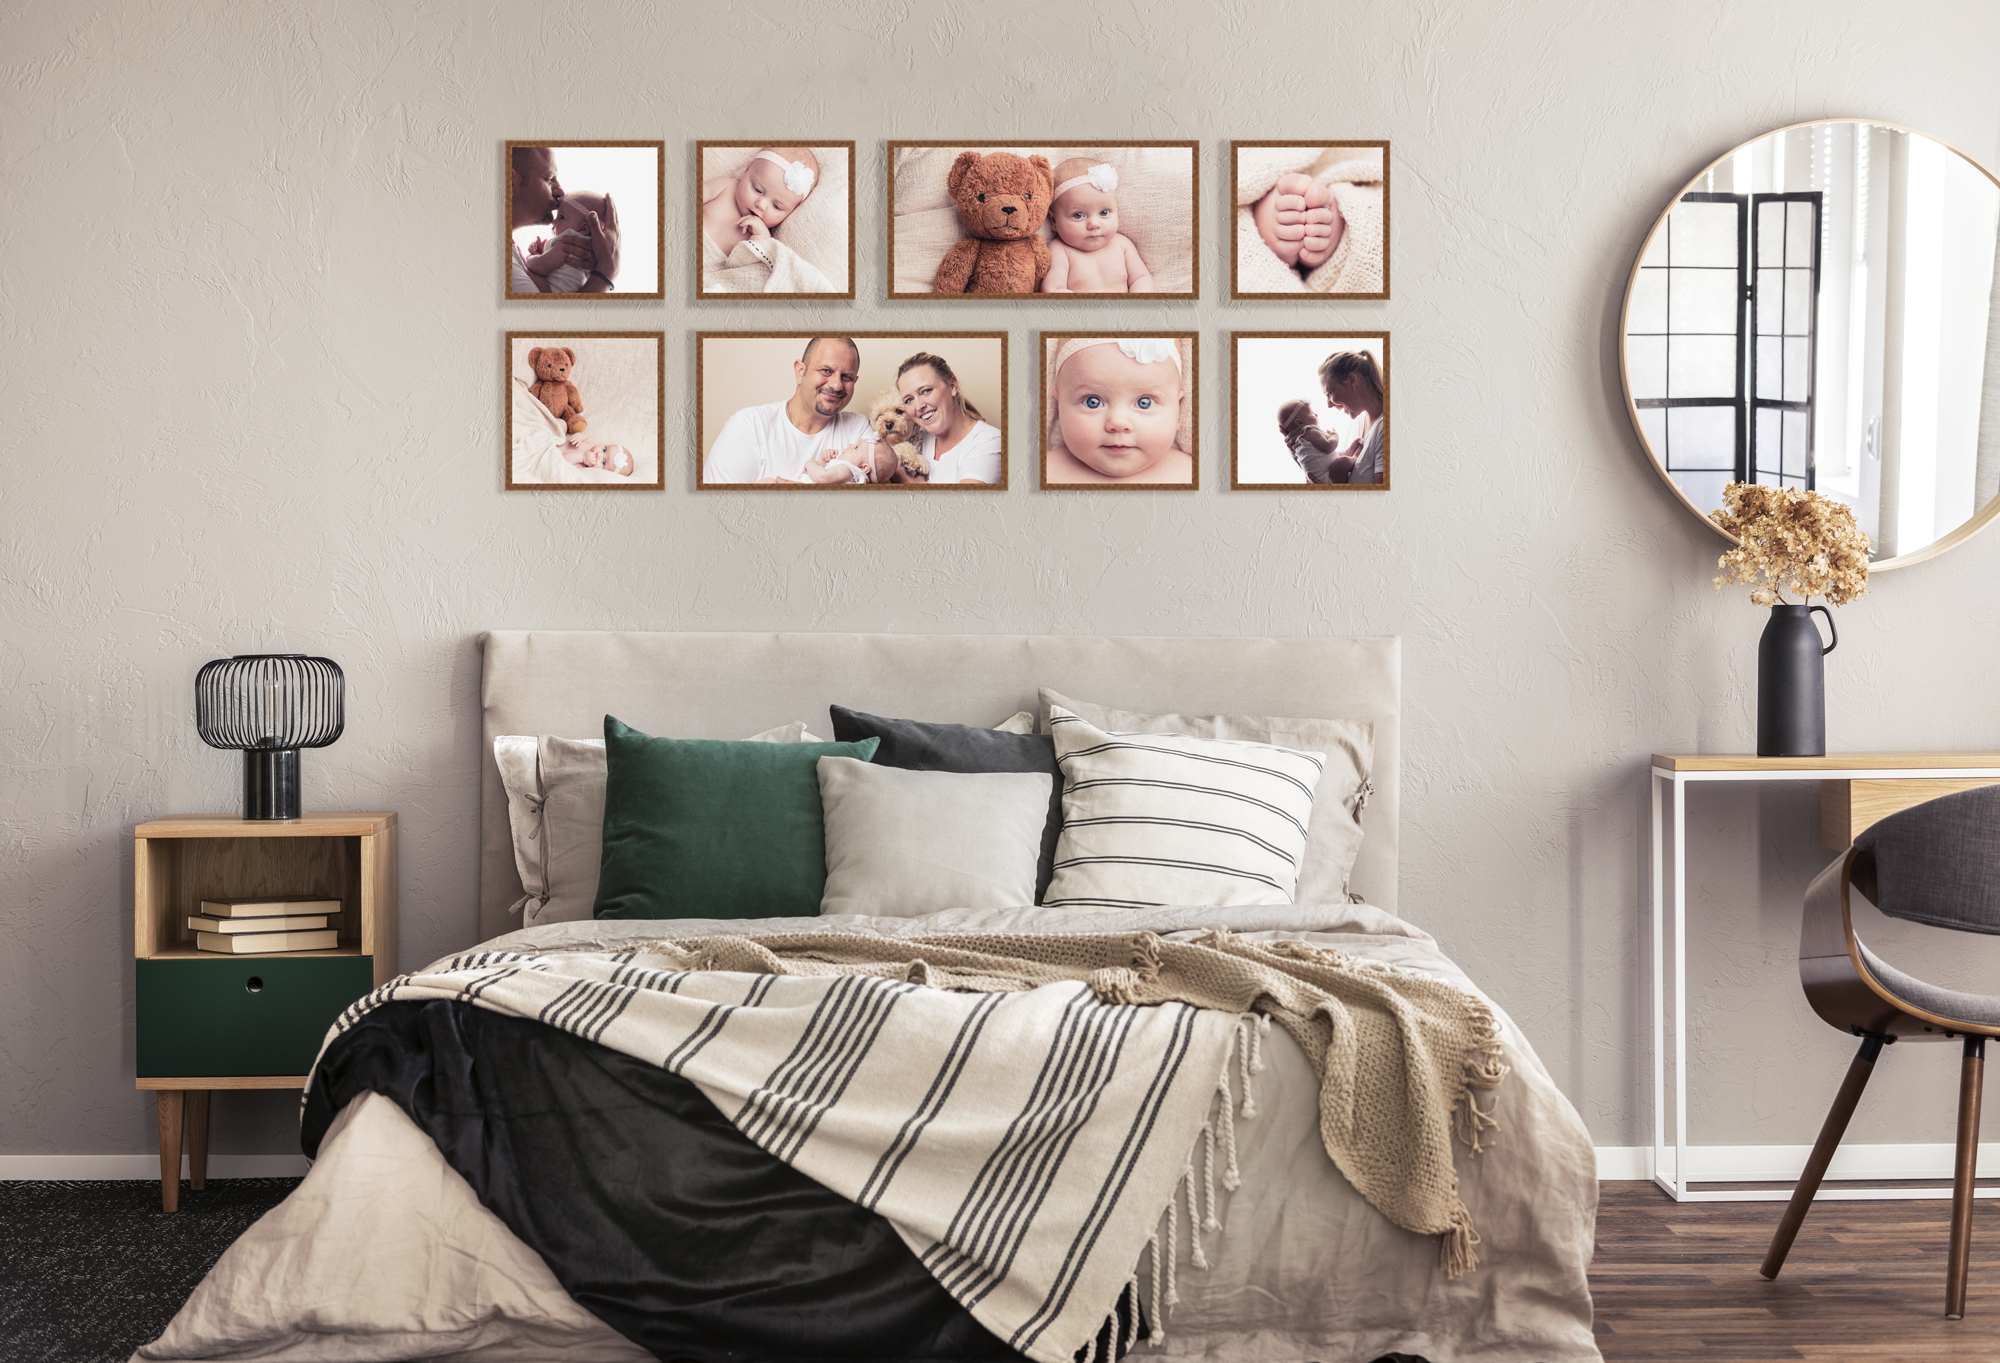 15% off any collection - Receive 15% off the RRP of any wall-art collection containing three pieces or more, when purchased during your cinema projection.